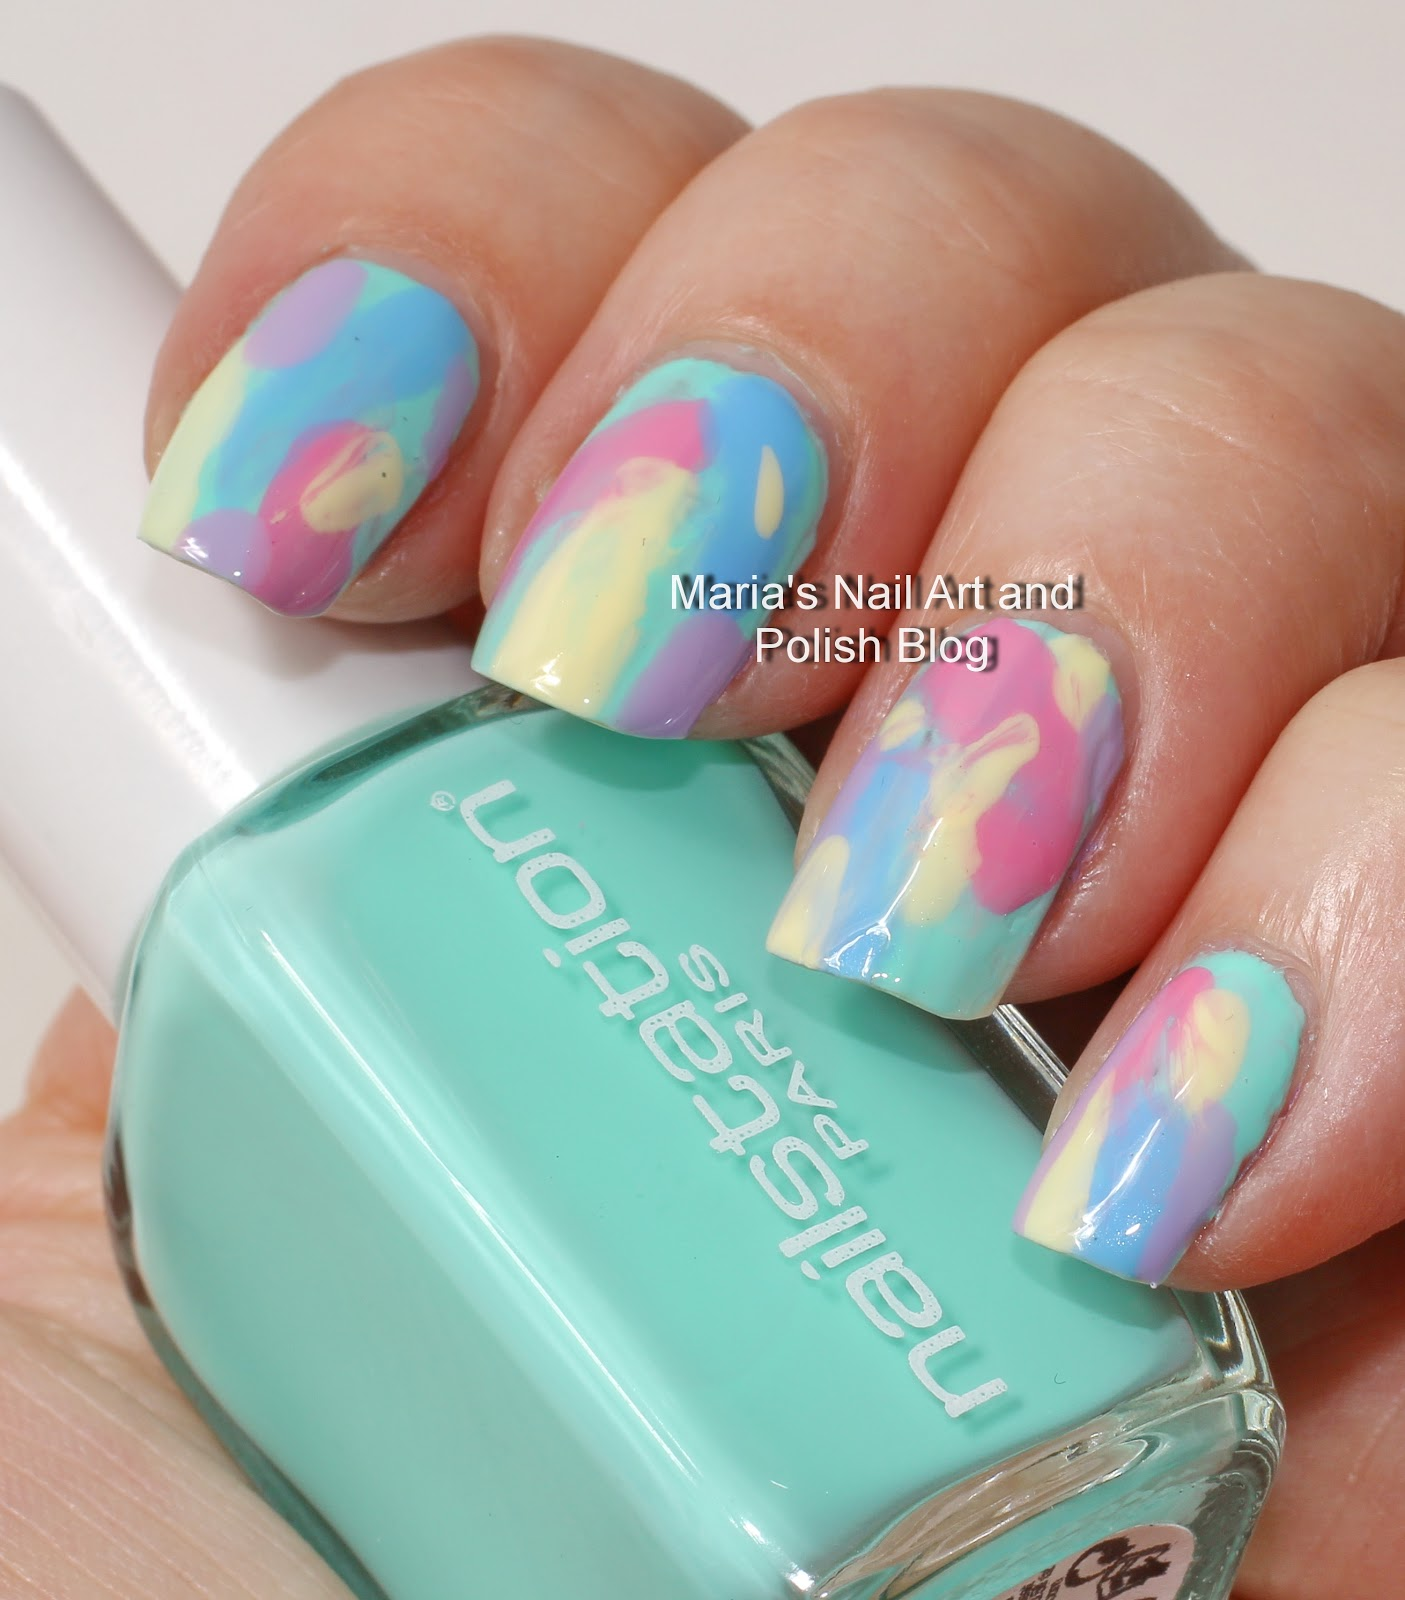 Marias nail art and polish blog easter brush stroke nail art easter brush stroke nail art artsy wednesday prinsesfo Images